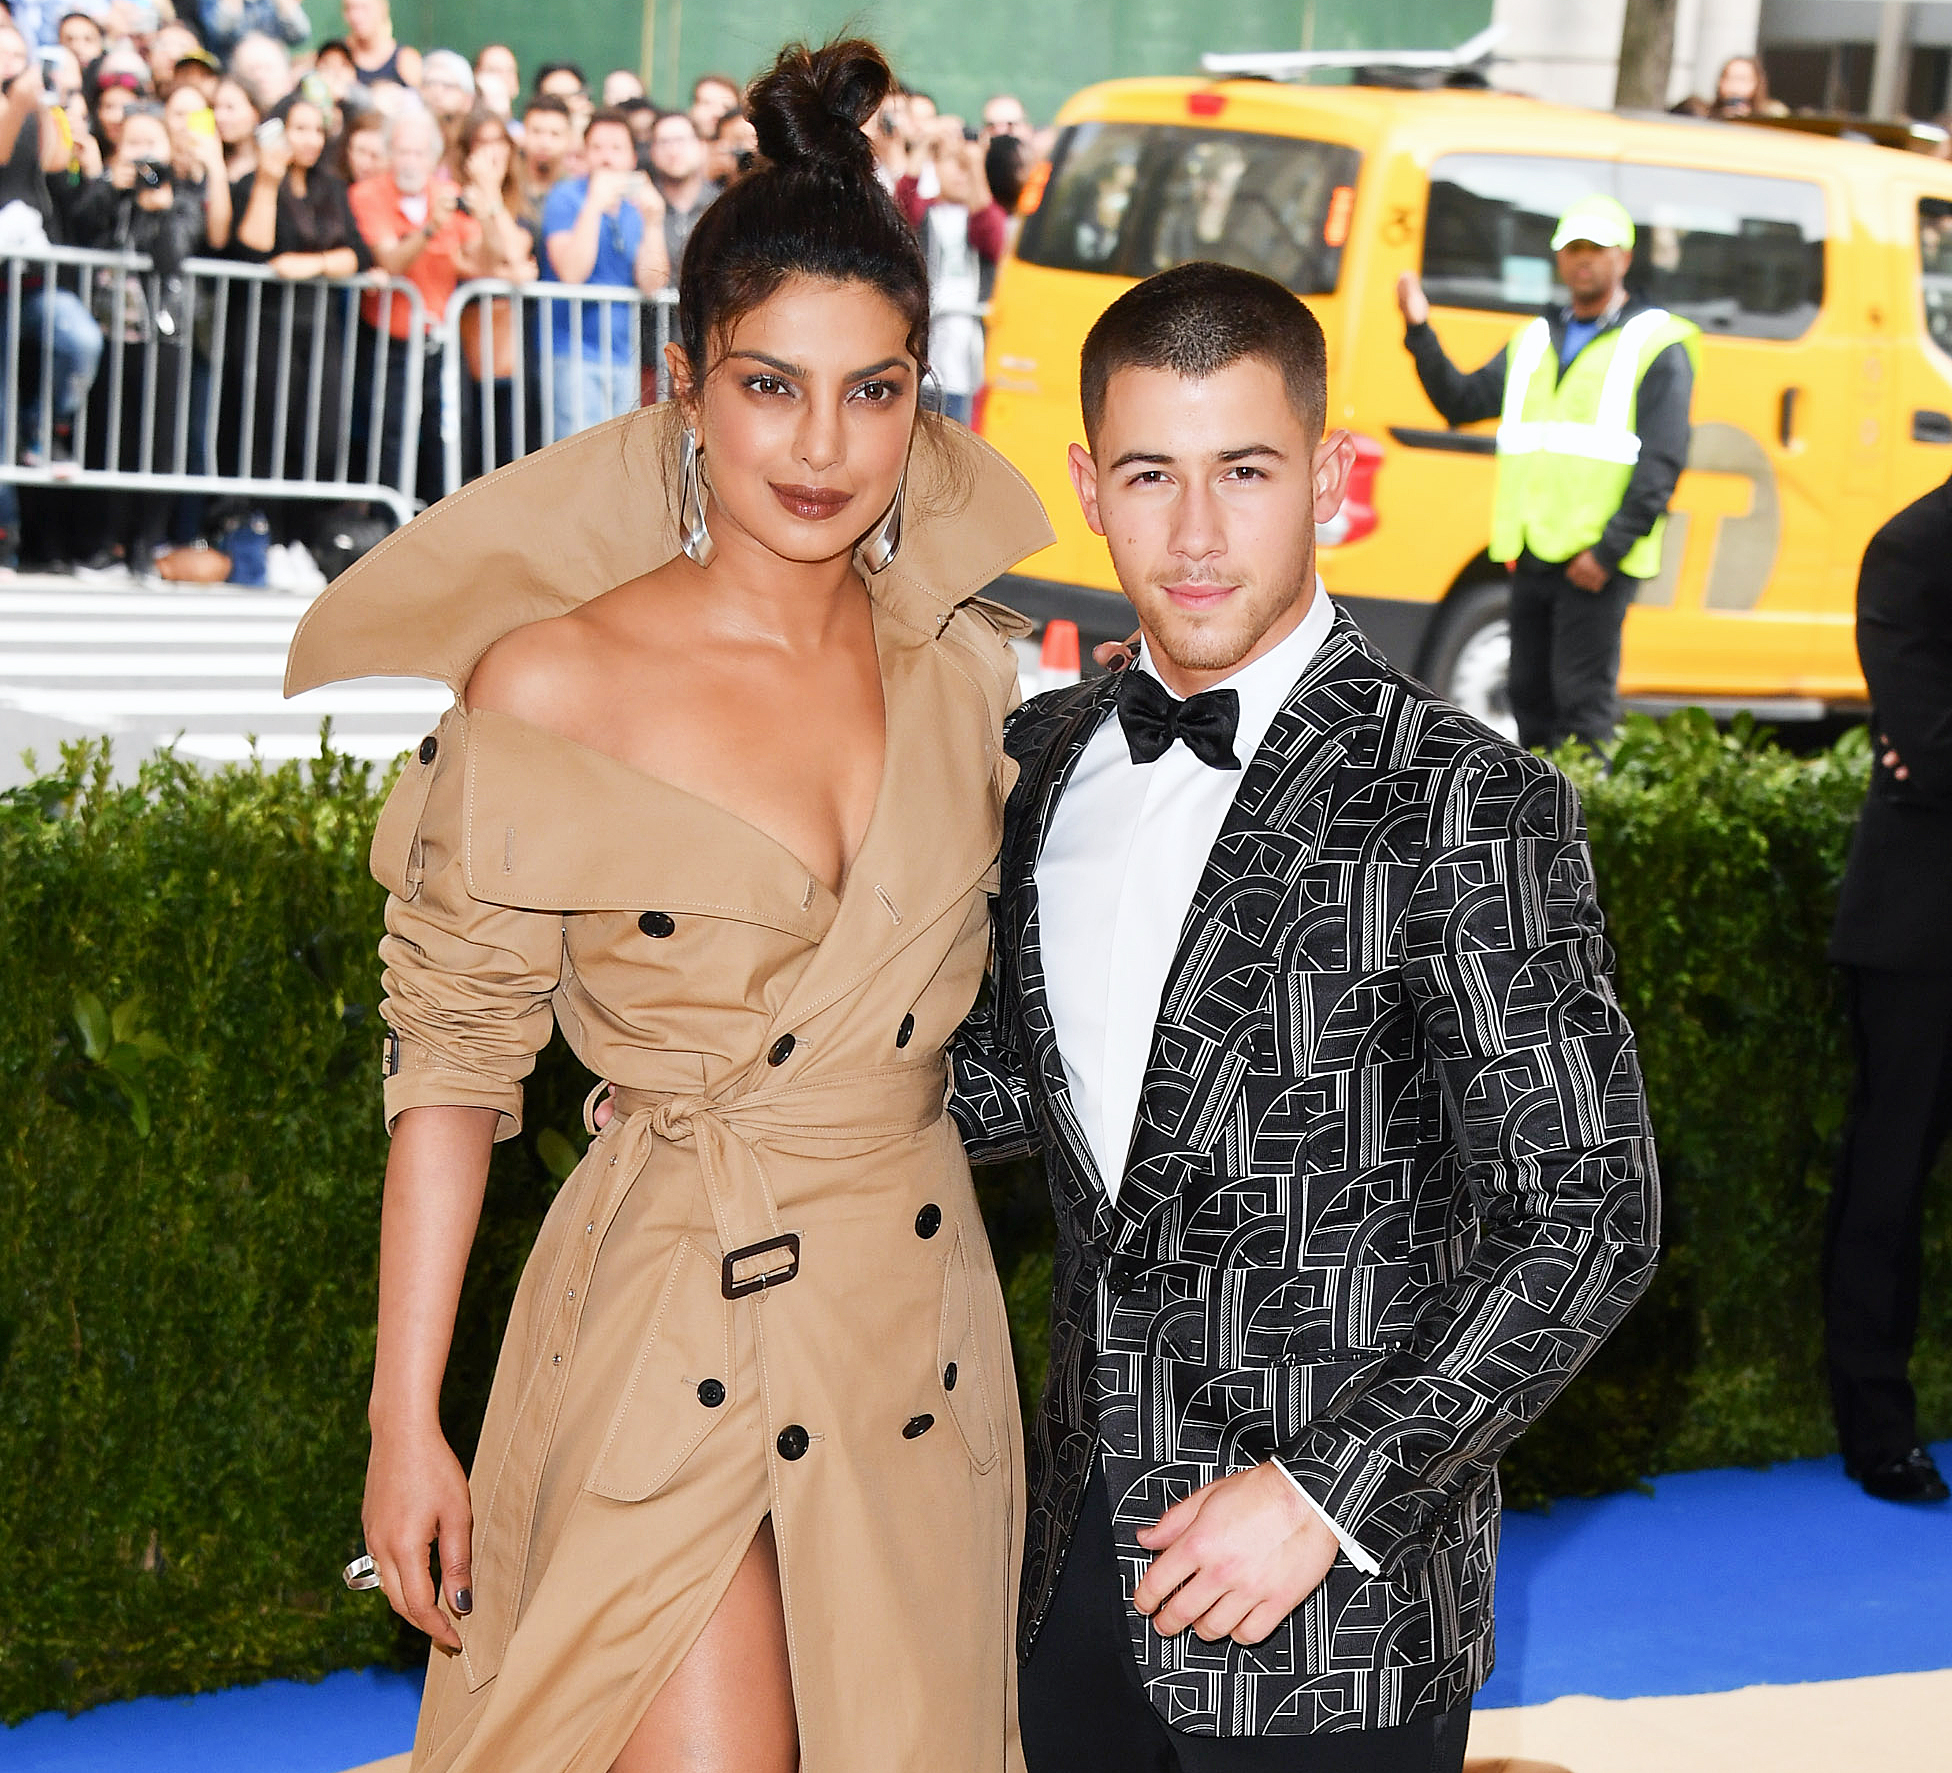 New couple alert? Priyanka Chopra, Nick Jonas spark dating rumours